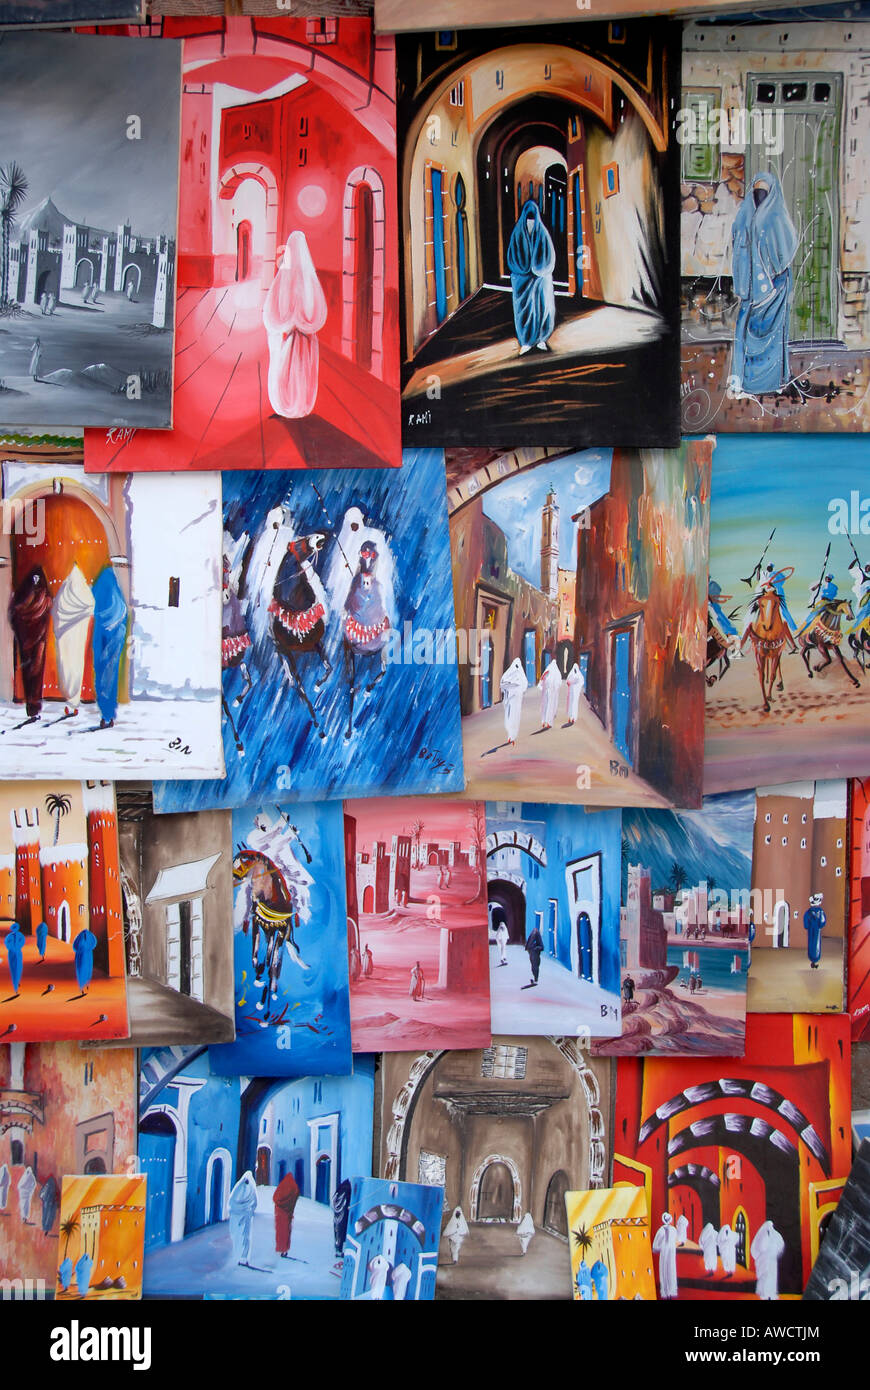 Compilation of many colourful paintings in the medina Marrakech Morocco - Stock Image